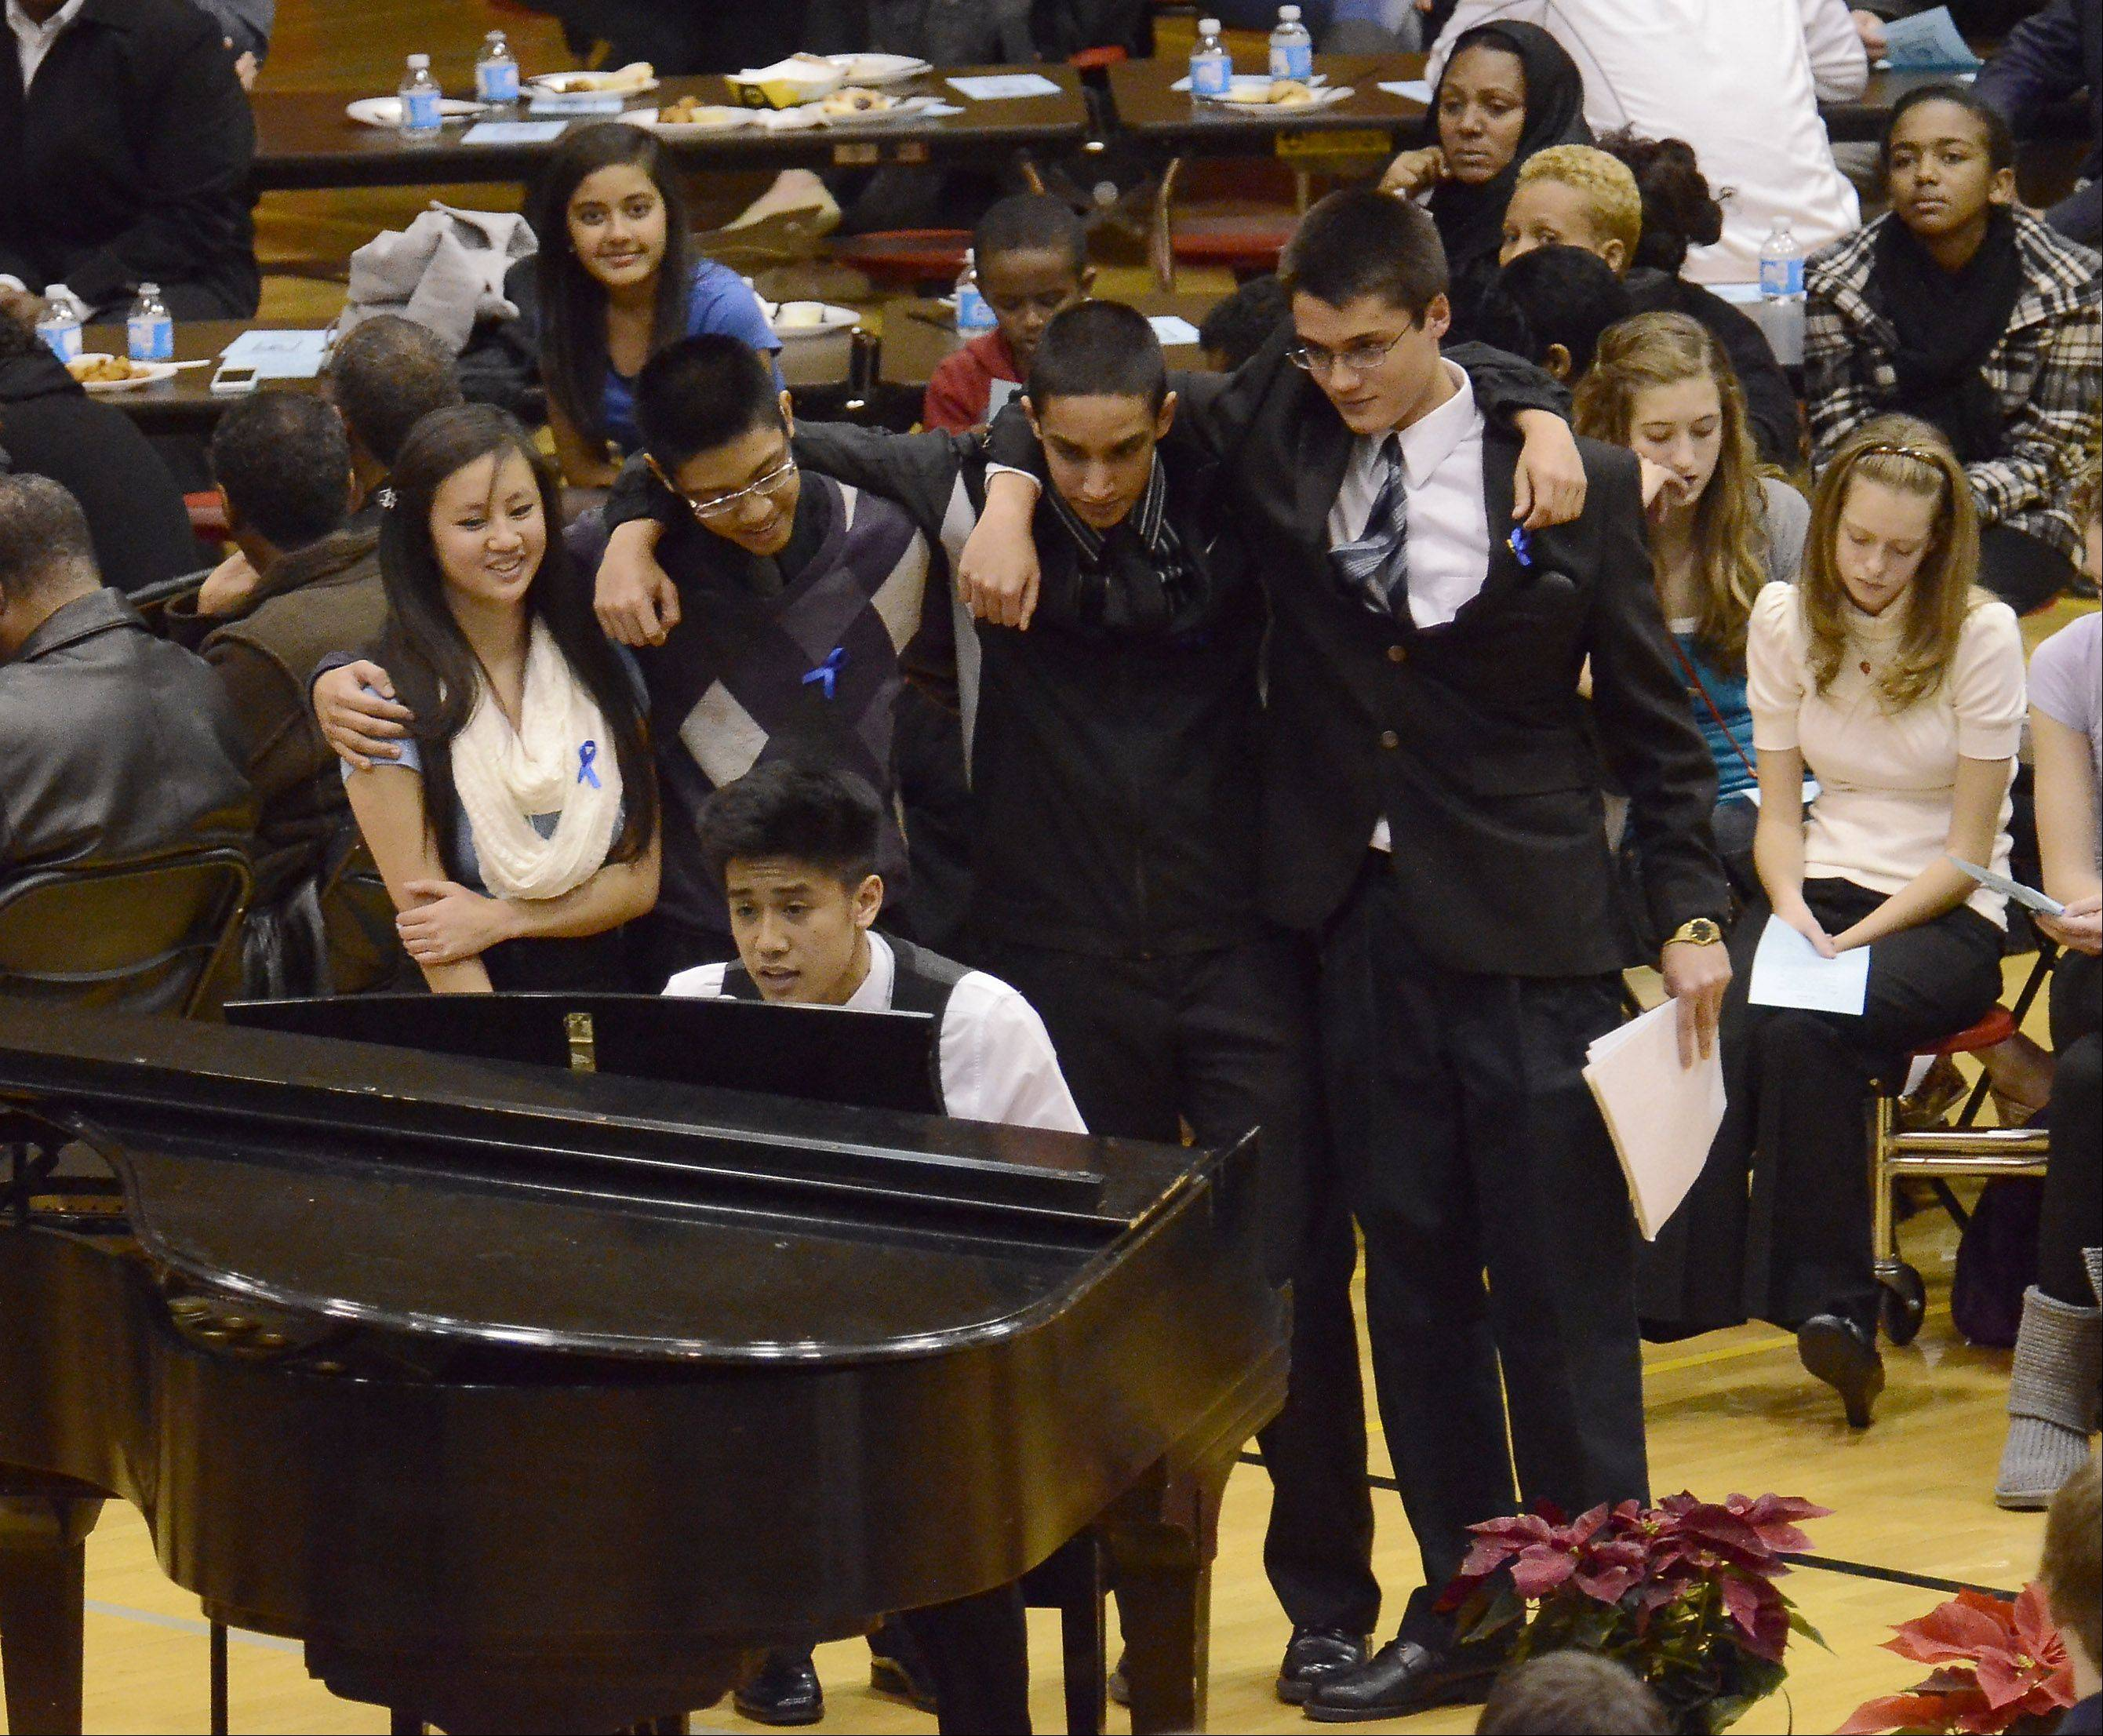 Jan Dimaano plays �Let It Be� on the piano as other friends of Schaumburg student Mikias Tibebu join in at a memorial service Thursday in the school gym.